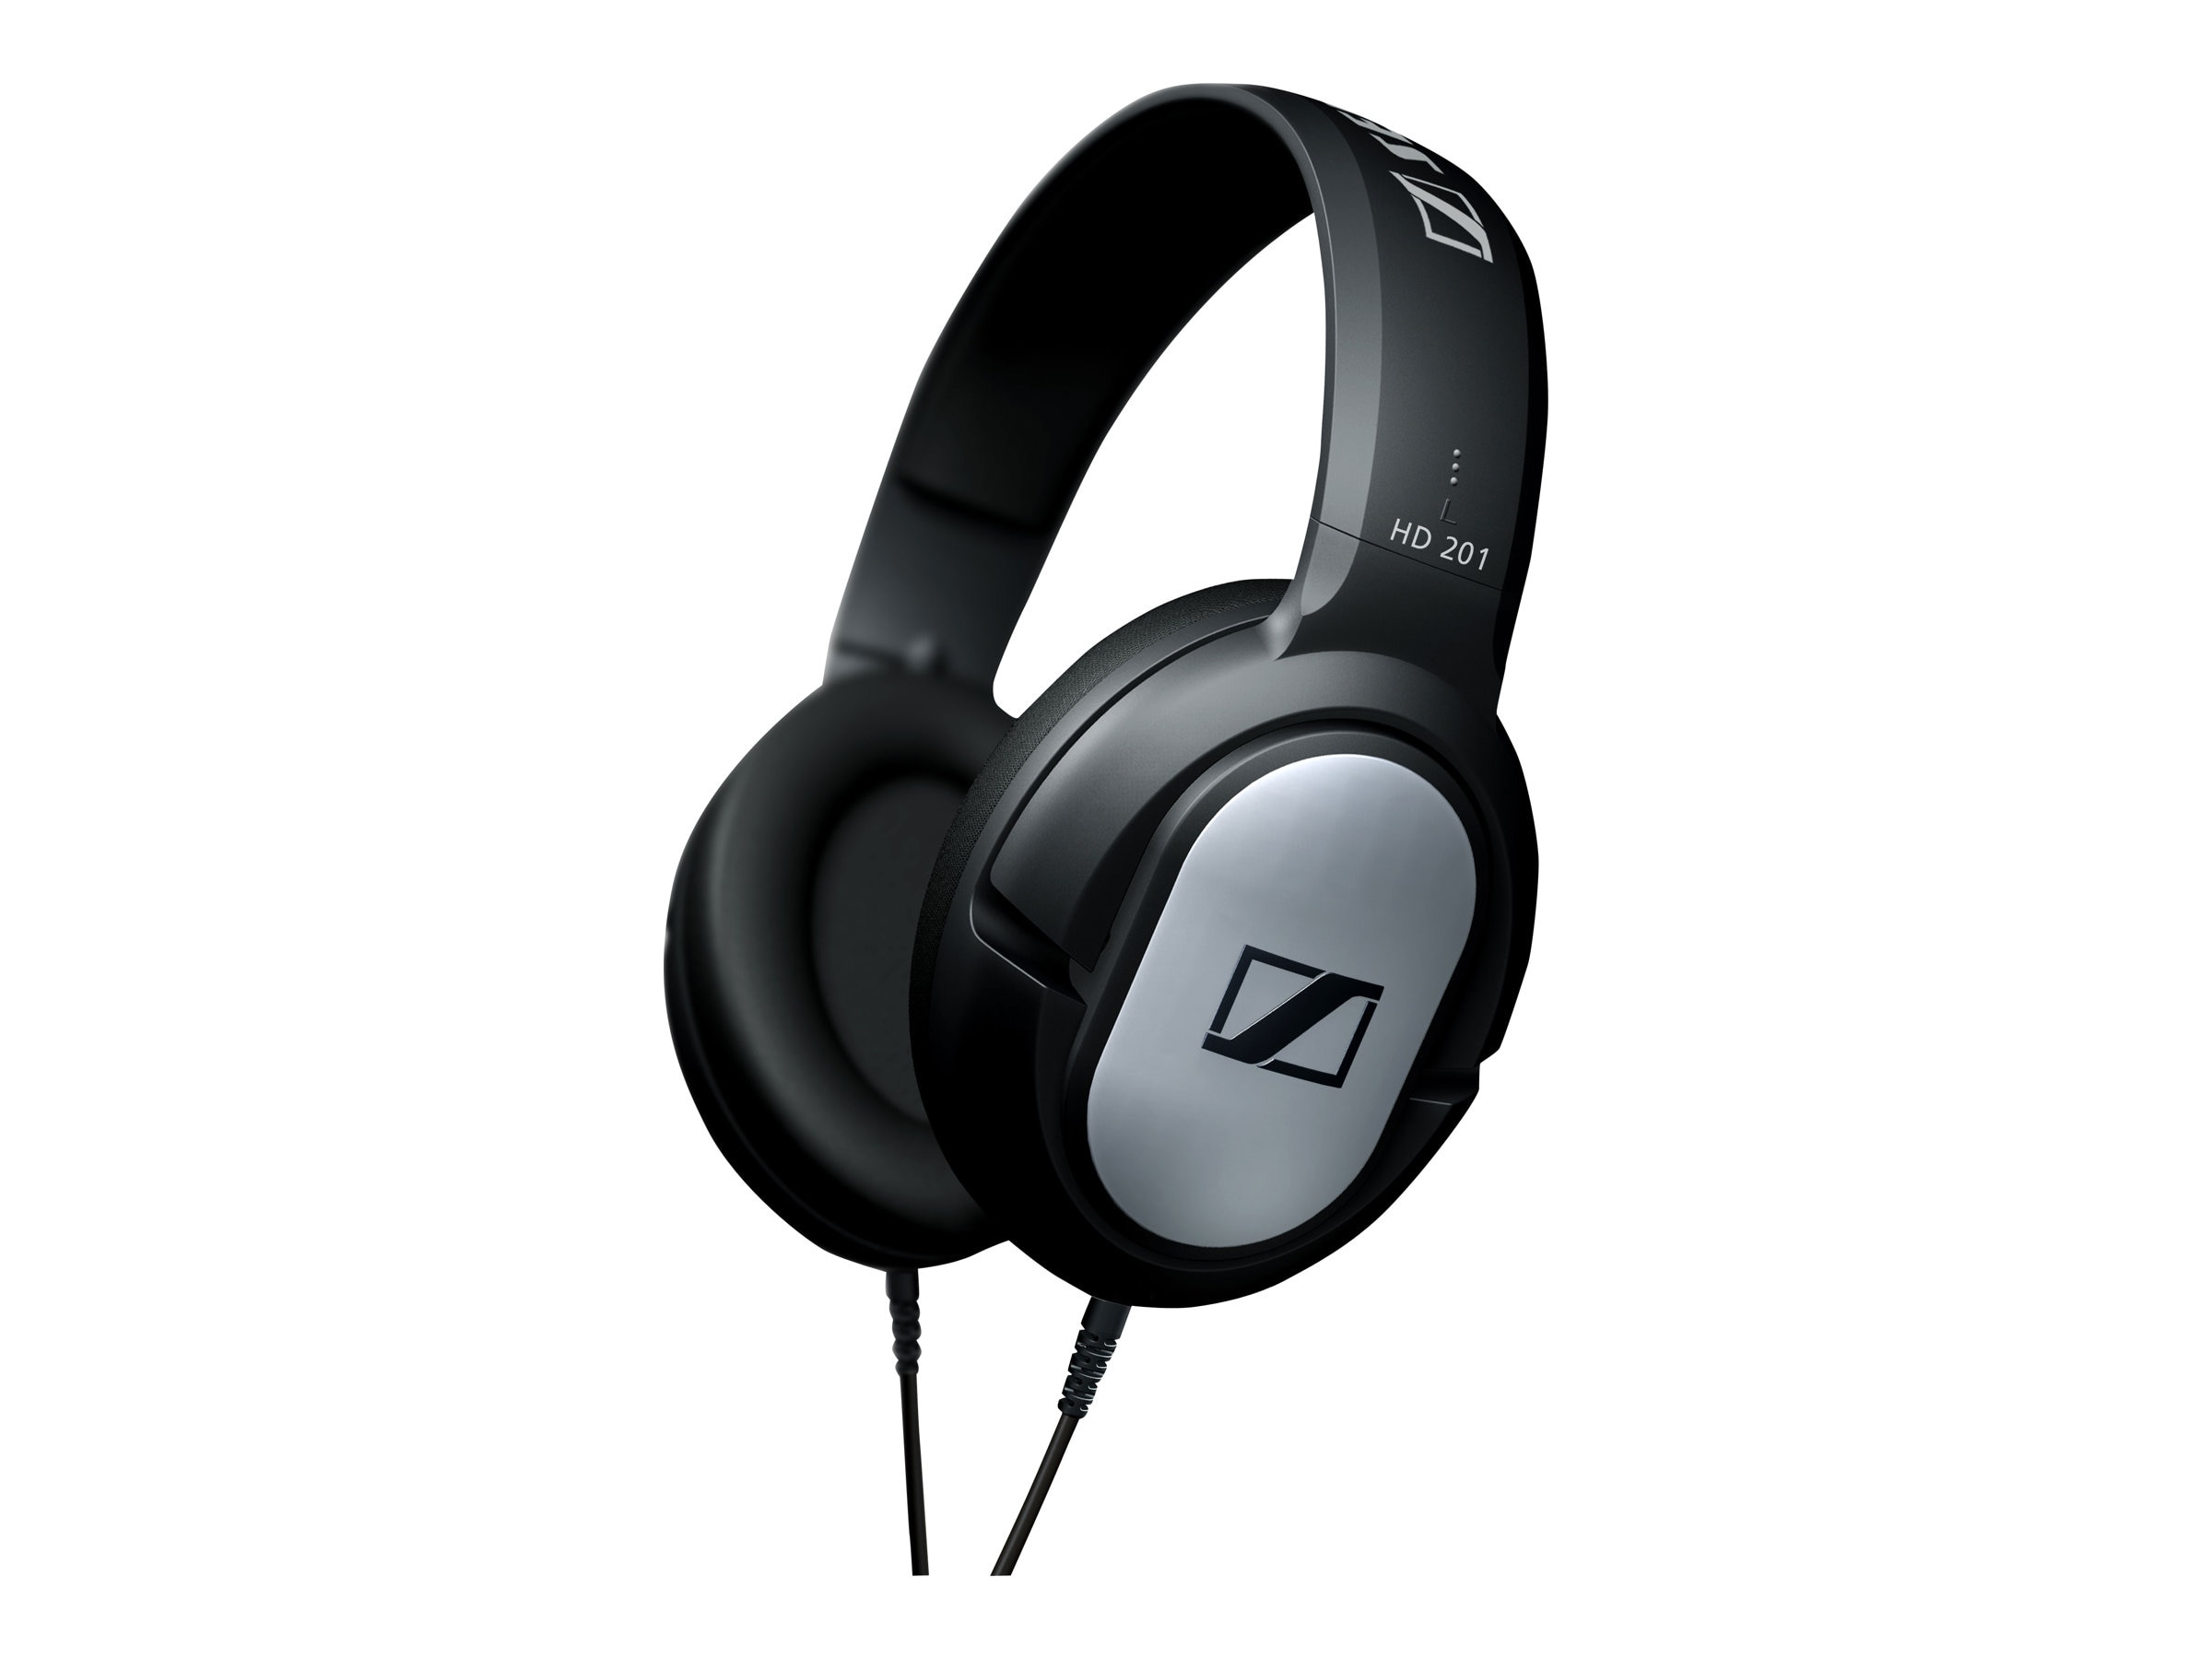 Sennheiser HD 201 Over Ear Headphones